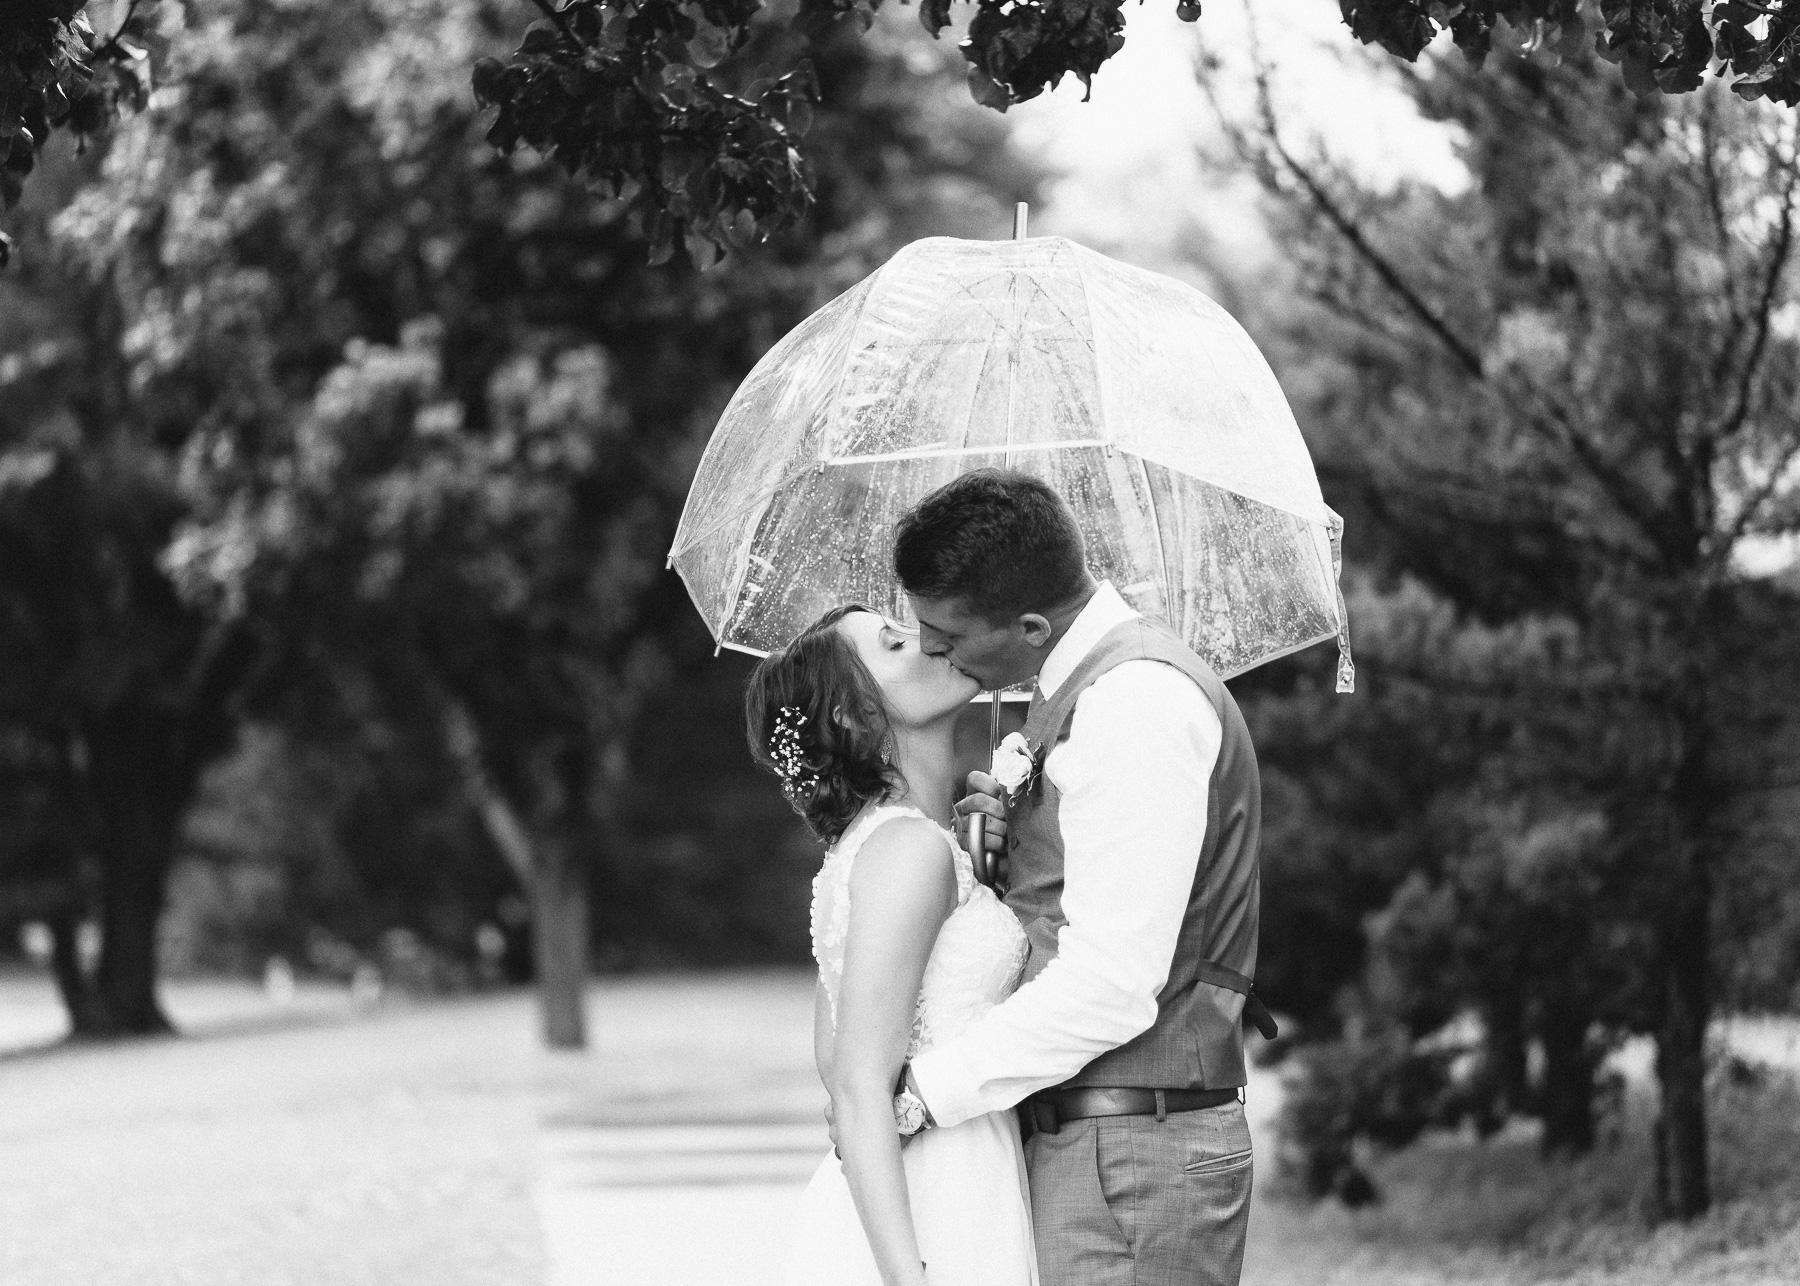 Zach and Abby kissing under umbrella